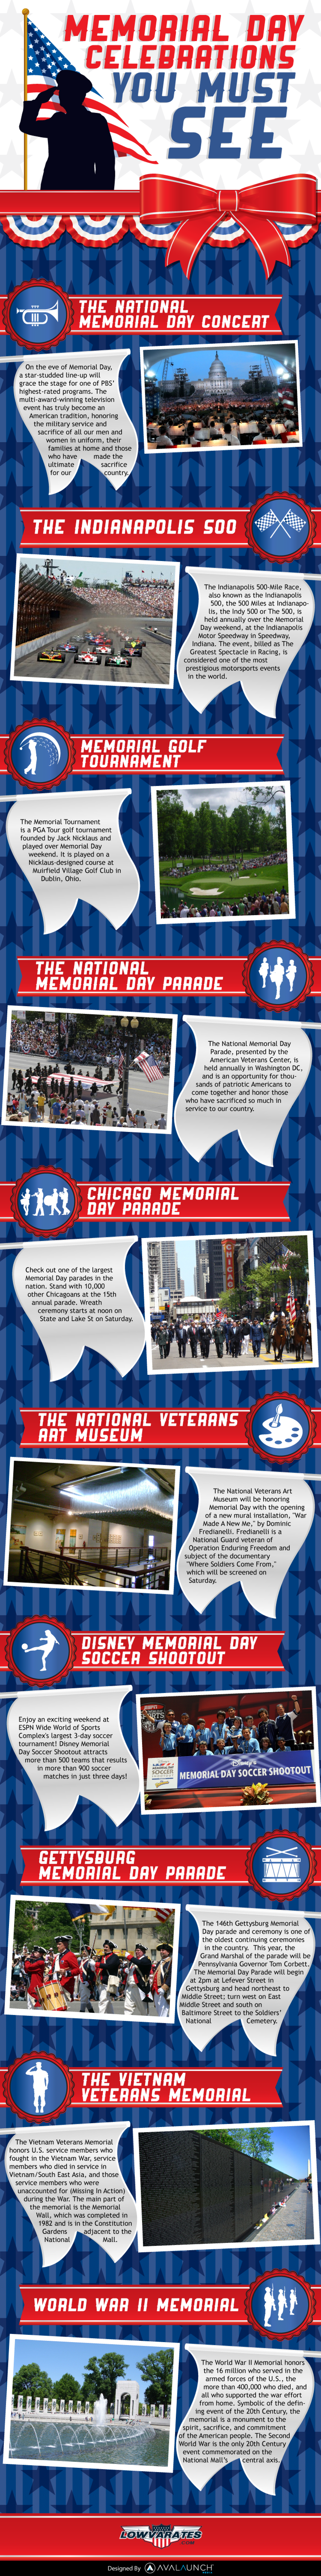 Memorial Day Celebrations You Must See Infographic